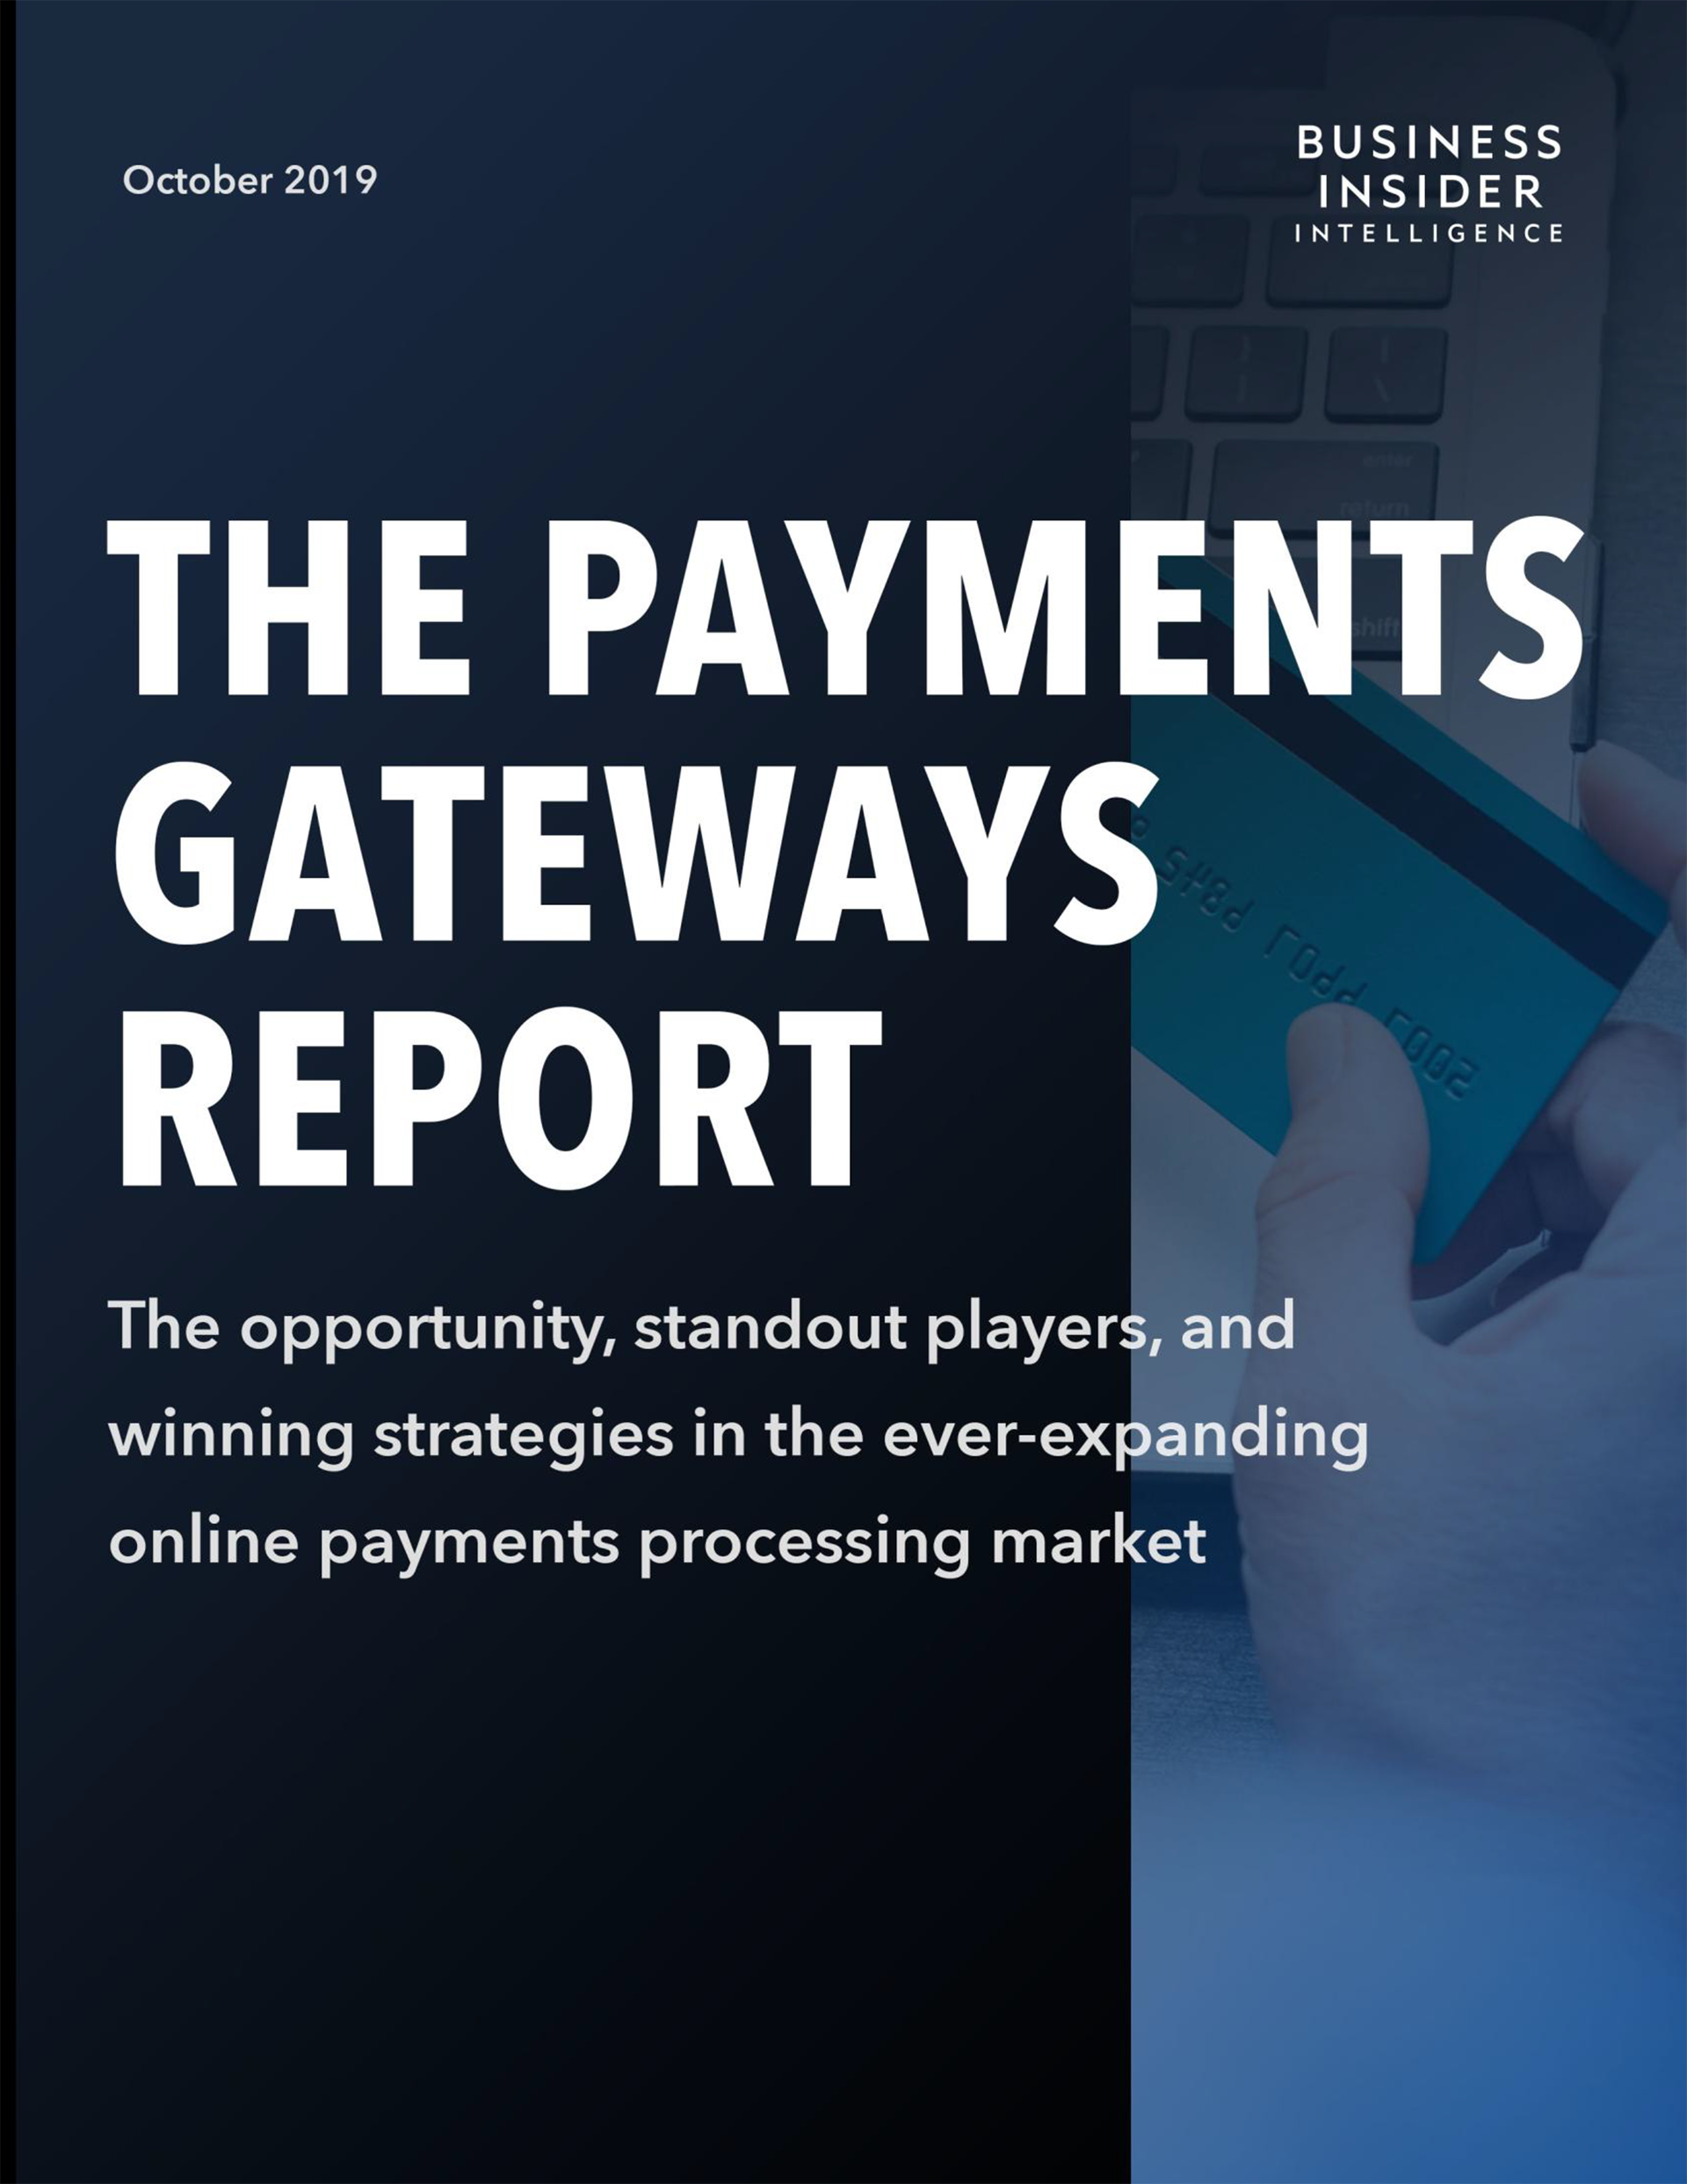 The Payments Gateways Report